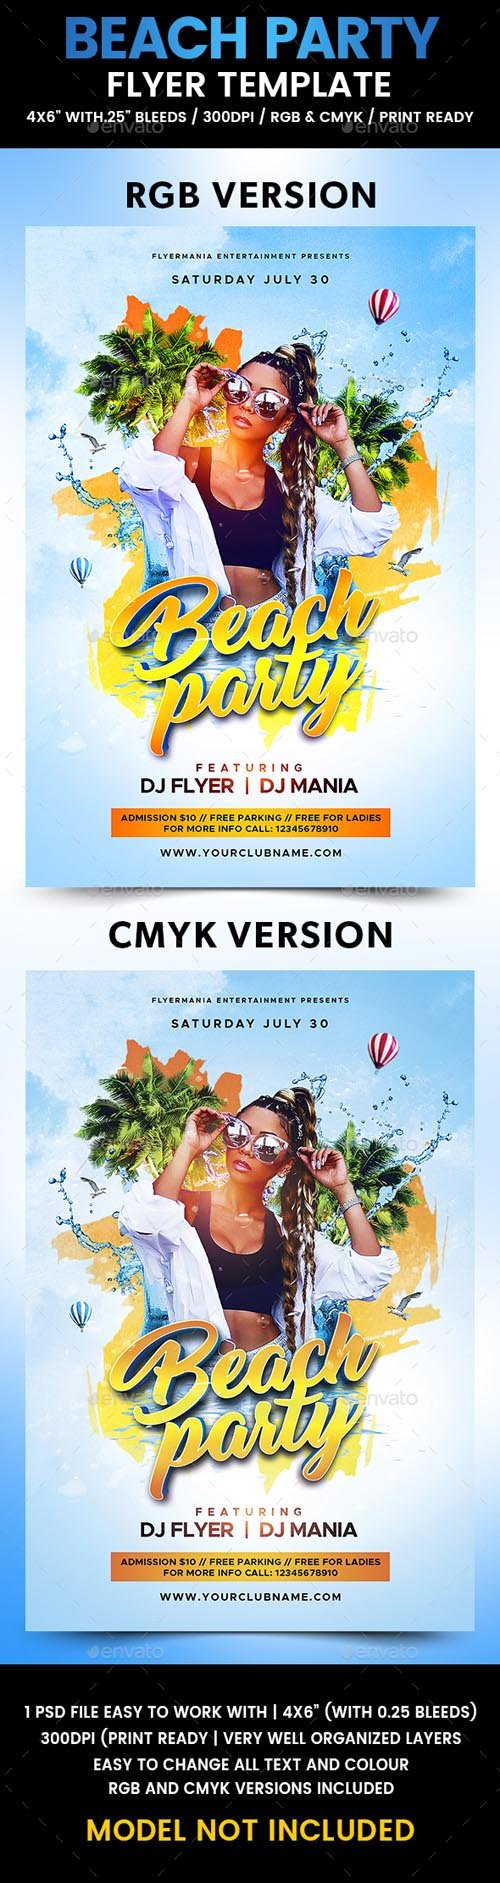 Beach Party Flyer Template 20295044